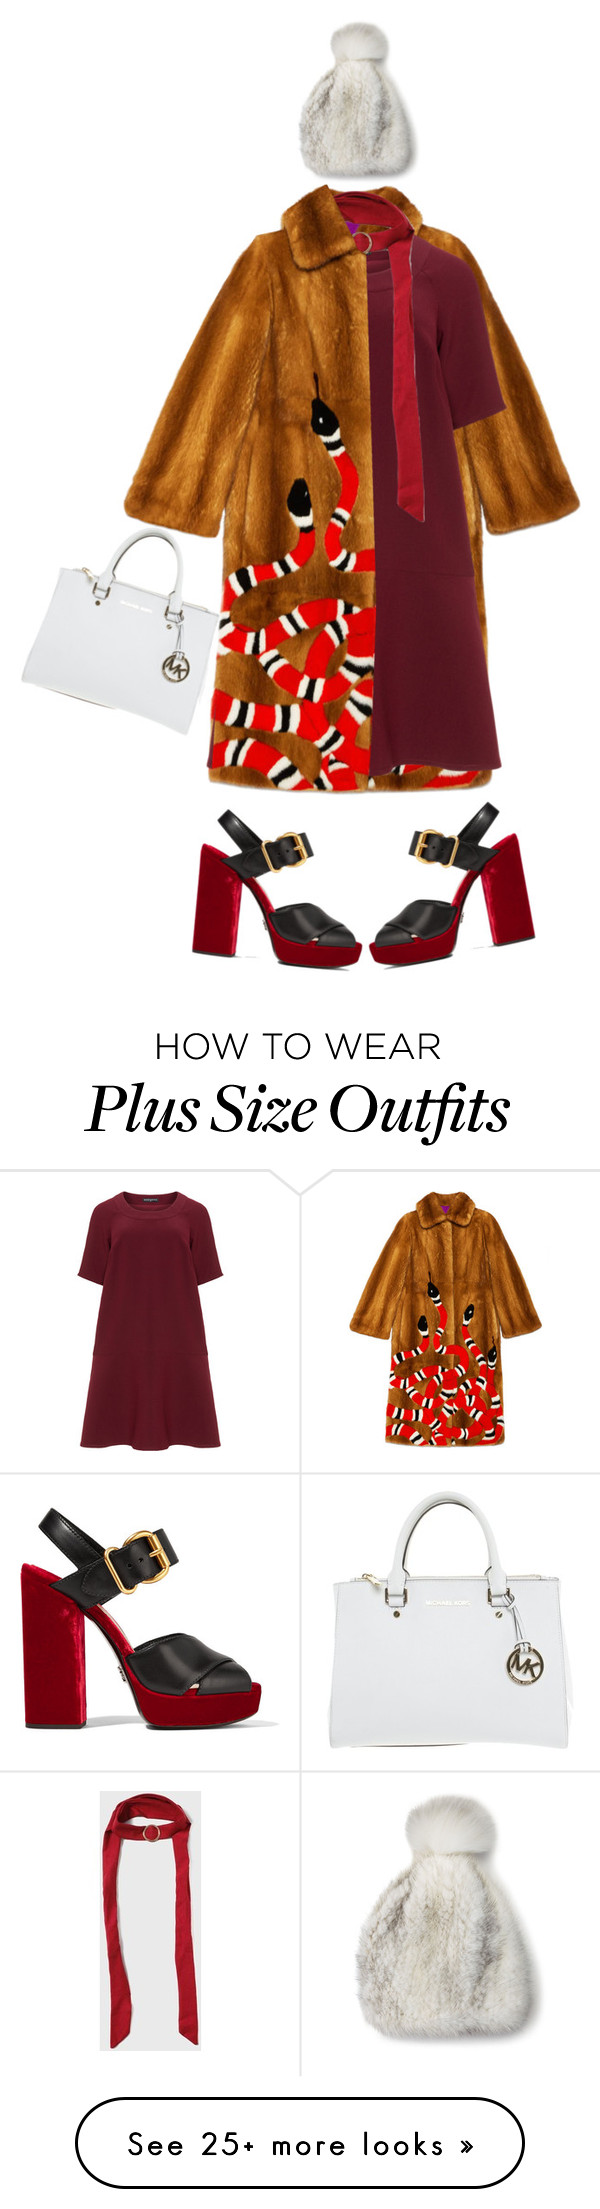 """""""Snakebites"""" by risingsea on Polyvore featuring Gucci, Manon Baptiste, Prada, Dorothy Perkins, Michael Kors and La Fiorentina"""